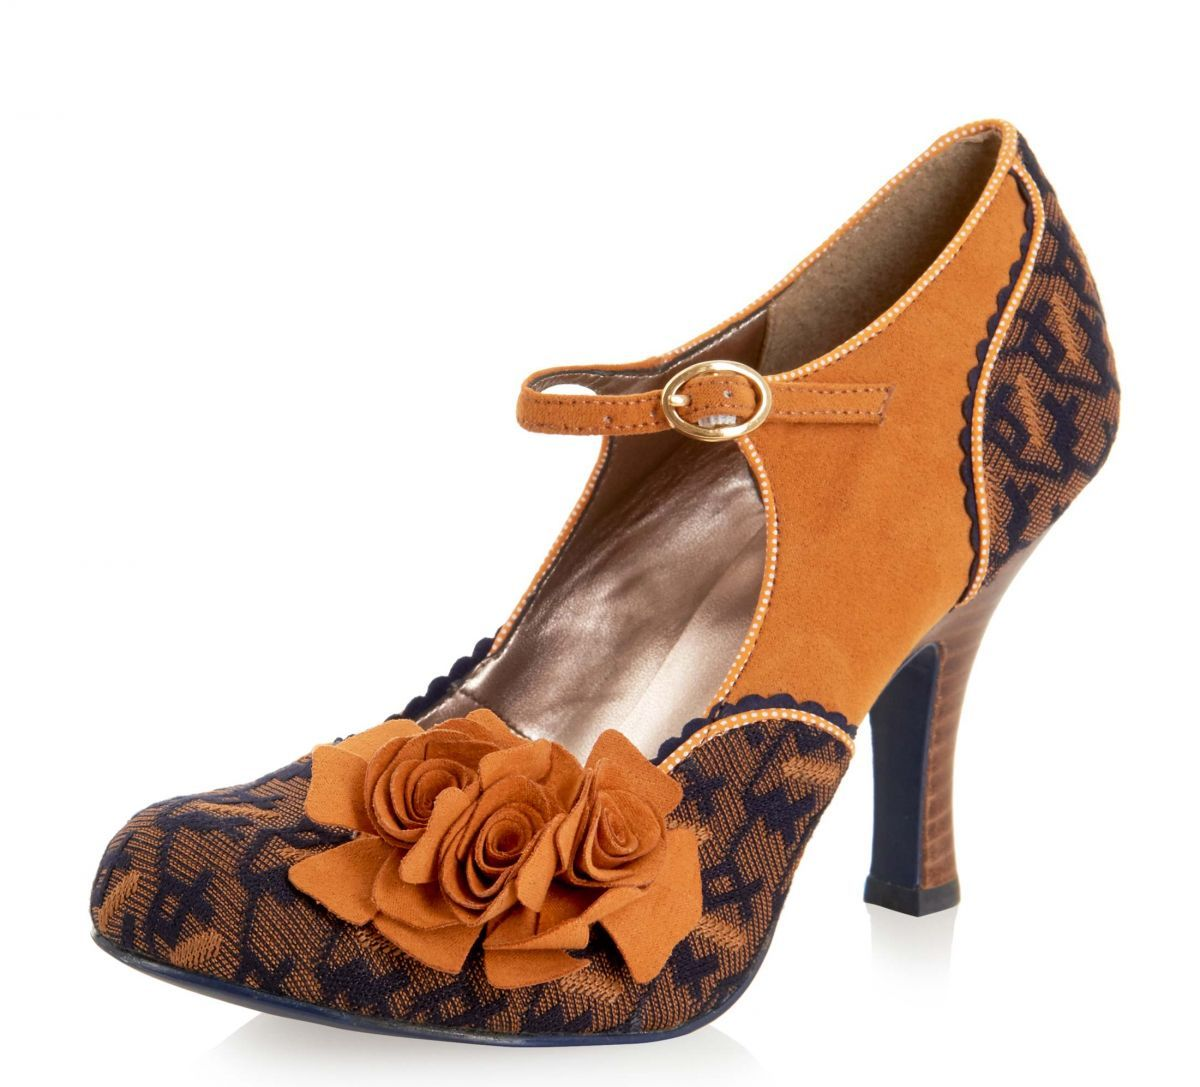 Ruby Shoo Ashley Mustard Navy Mary Jane High Heel Flower Shoes